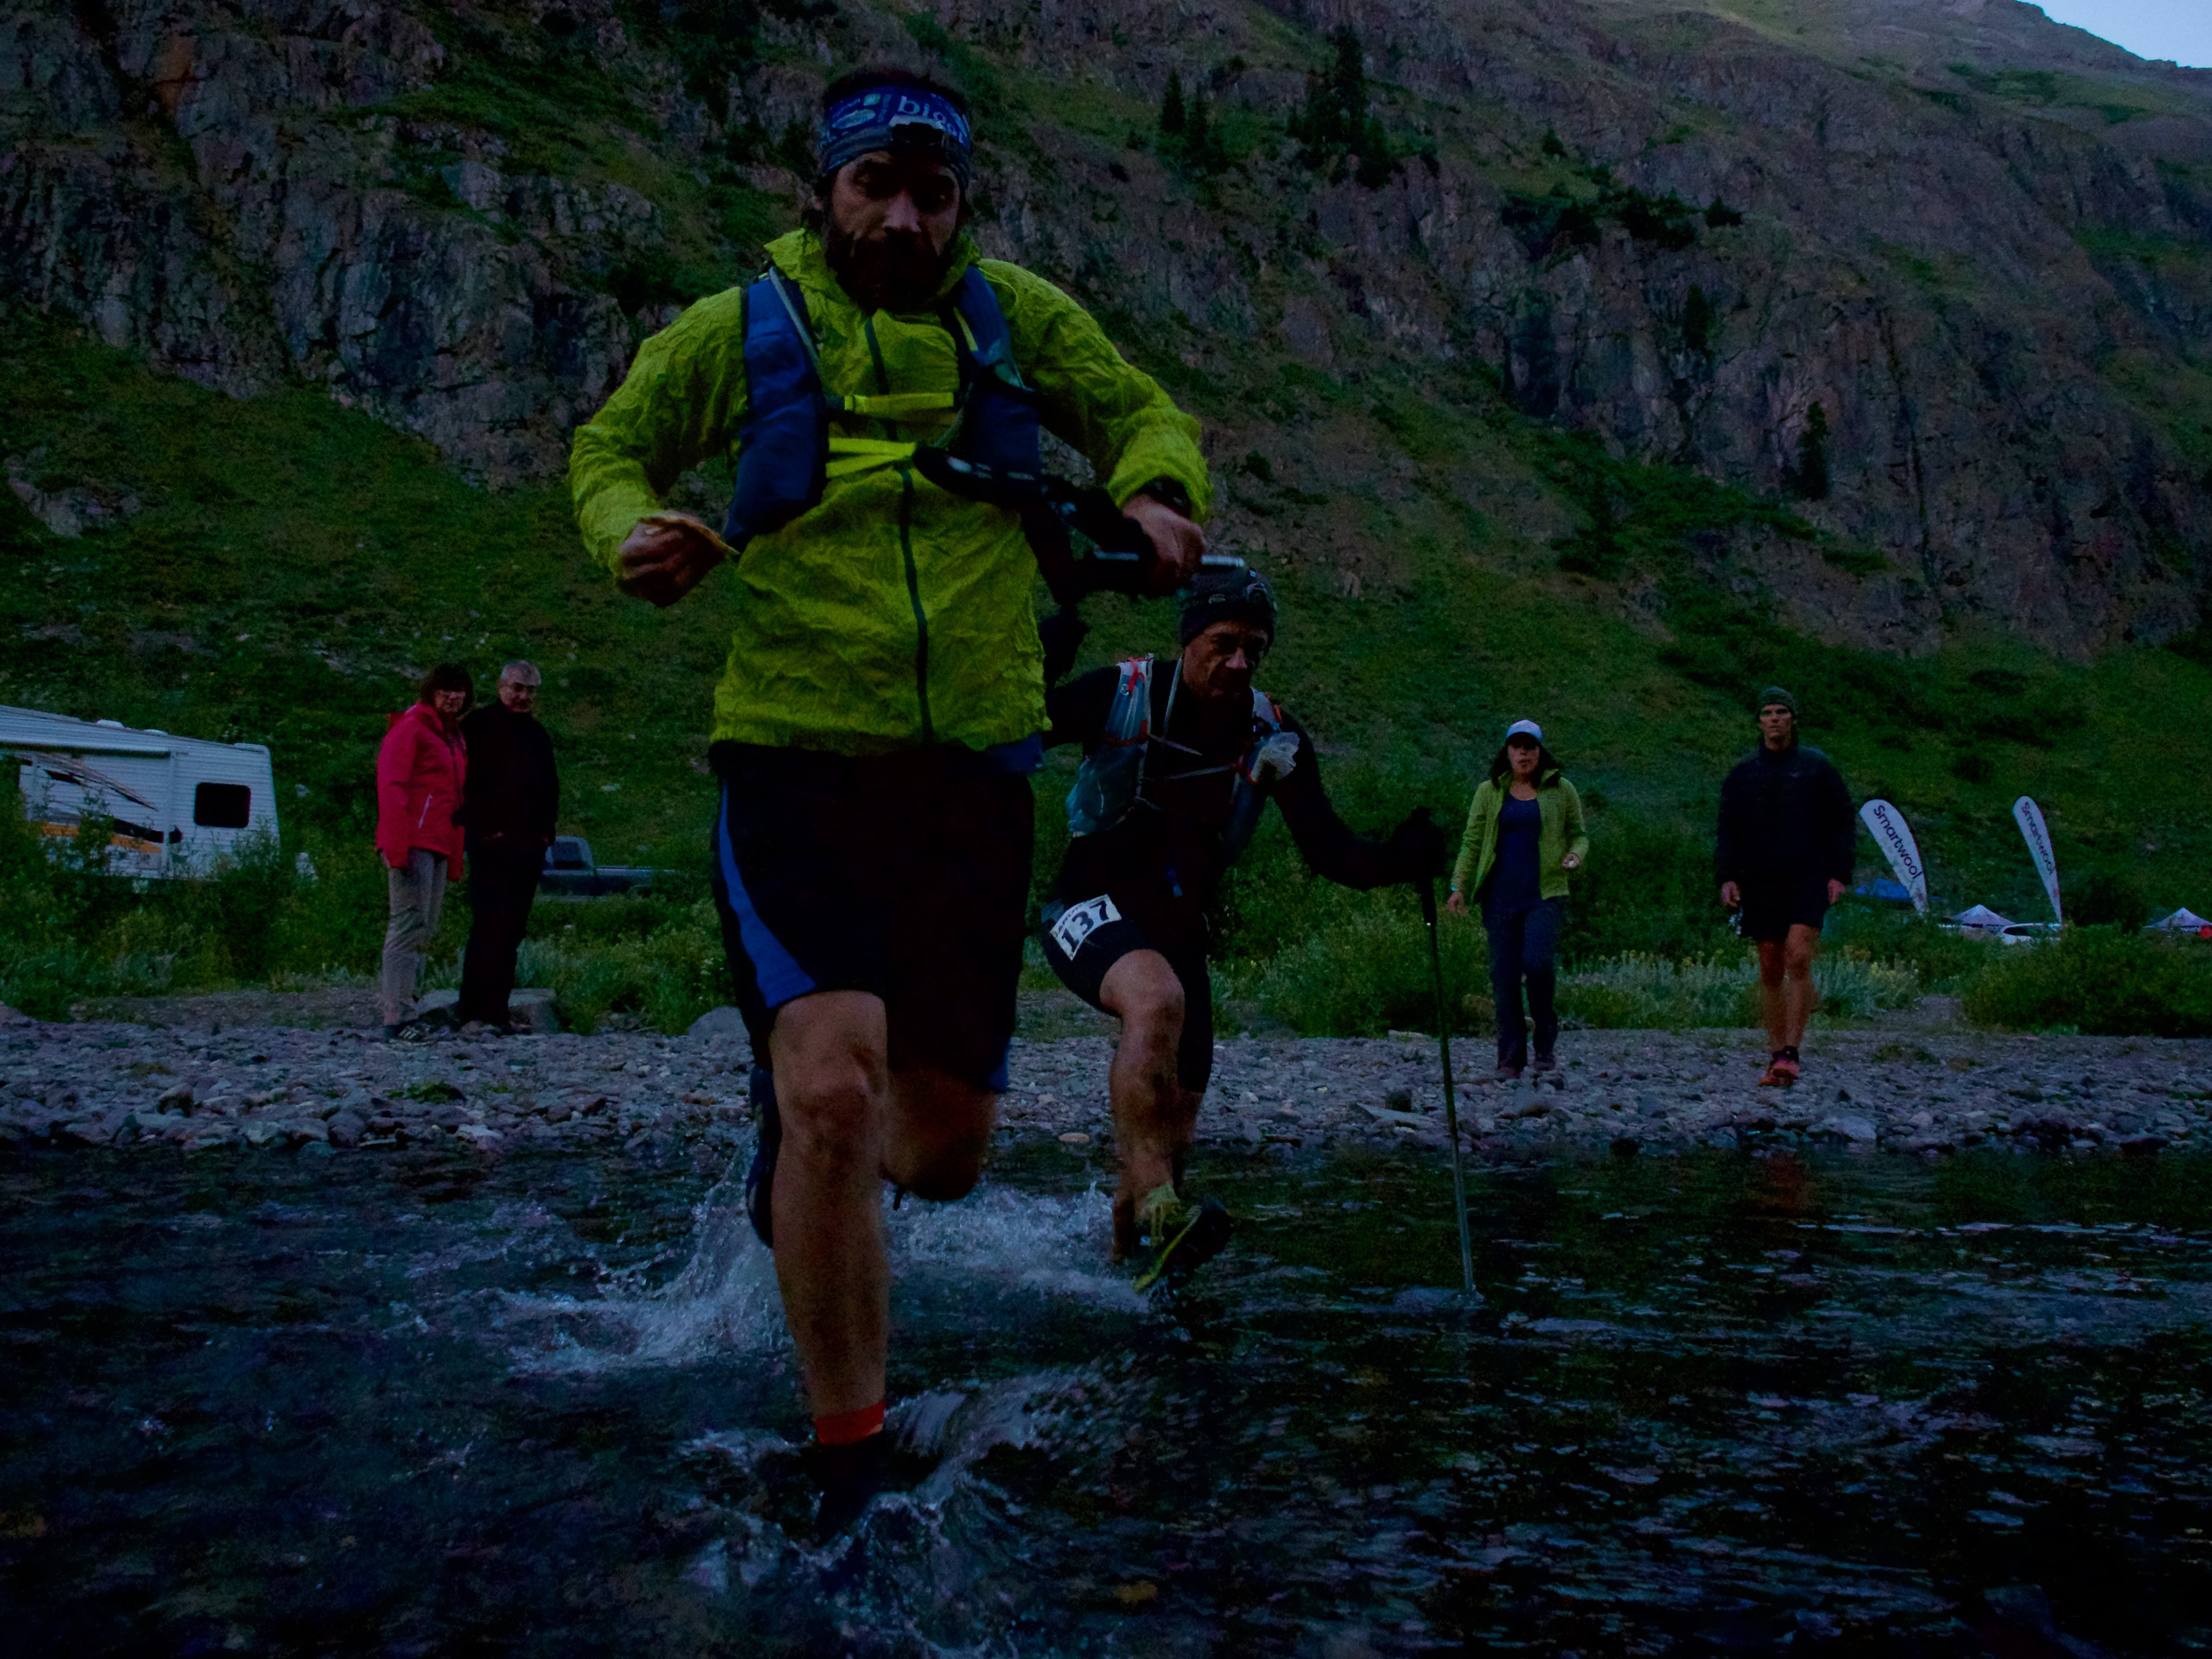 Crossing the stream at Cunningham aid station with Barry Lass